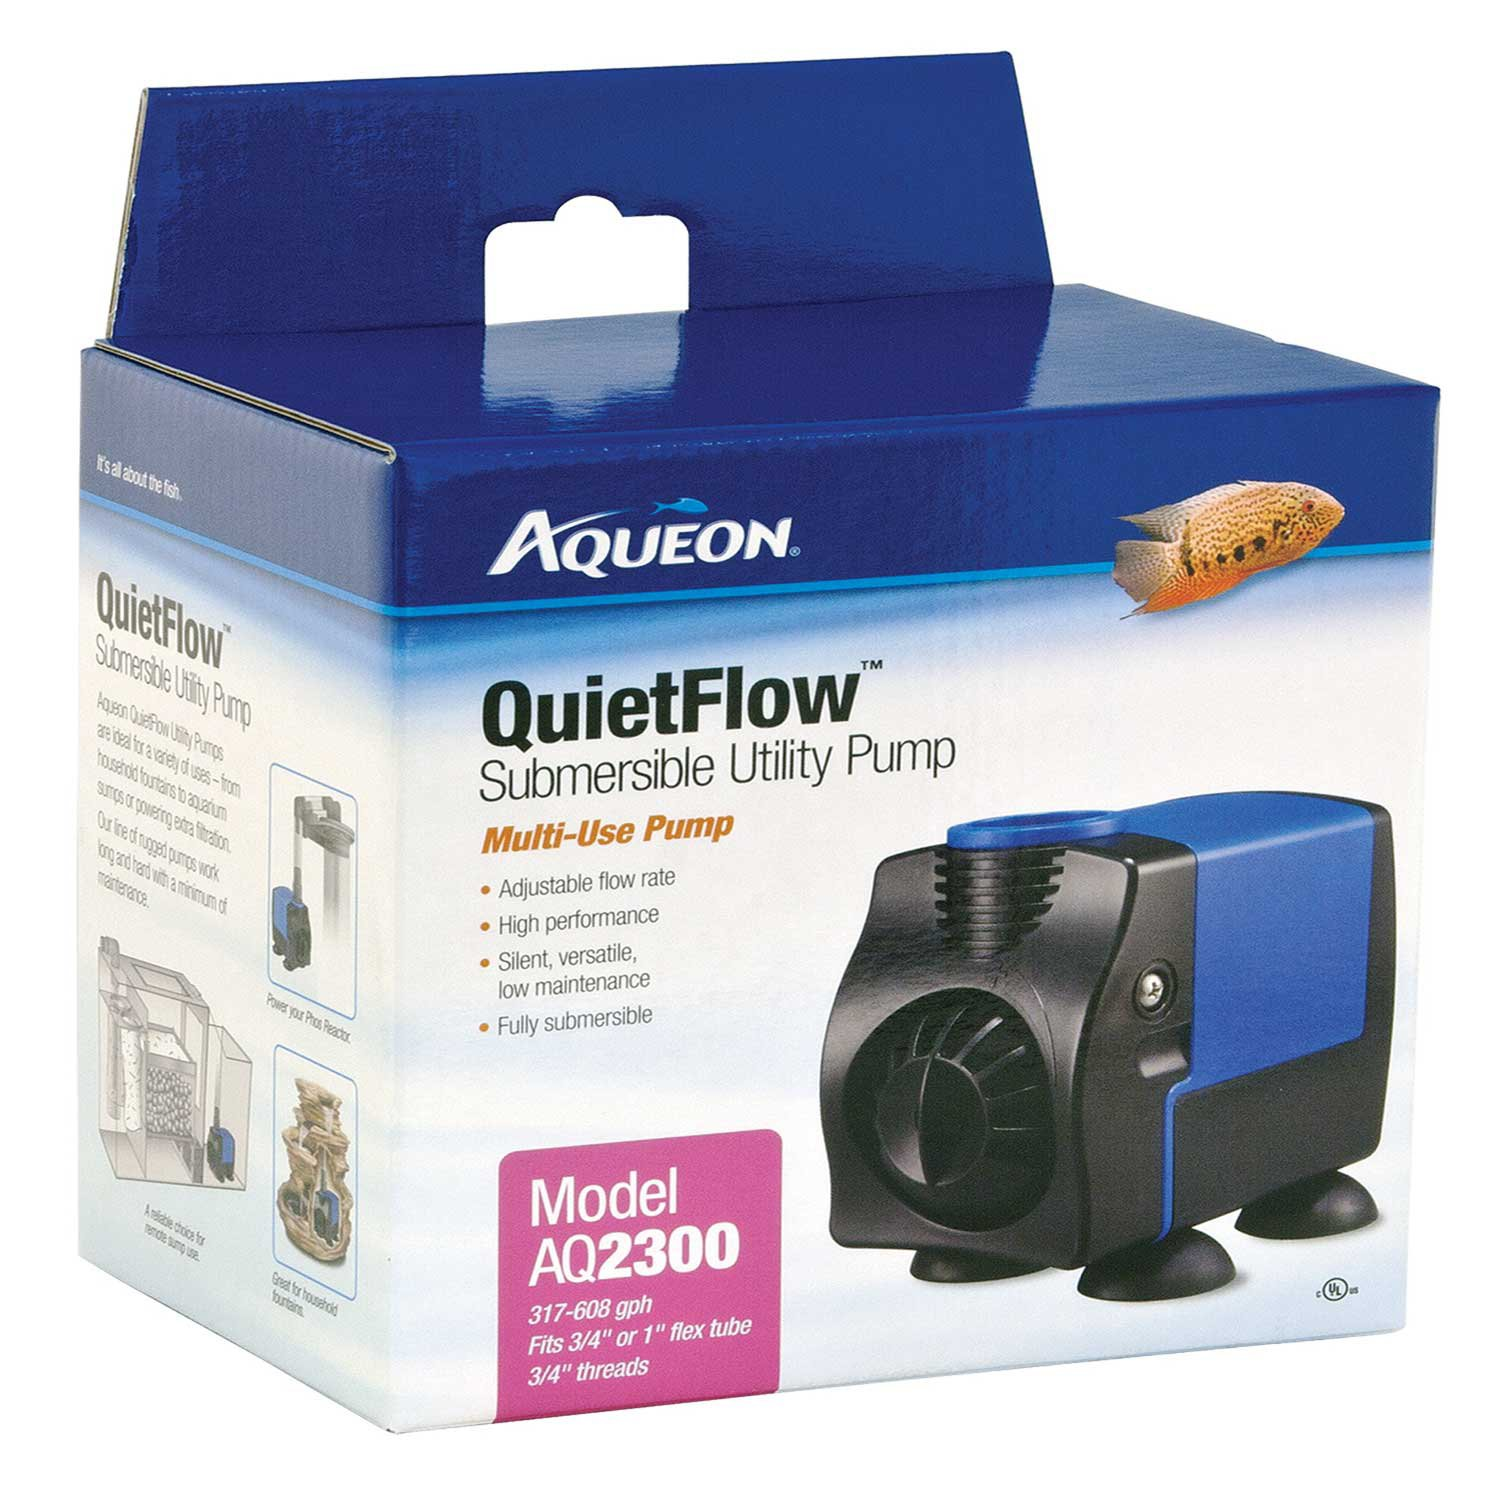 Fish tank electricity cost - Aqueon Quietflow 1700 Submersible Utility Pump